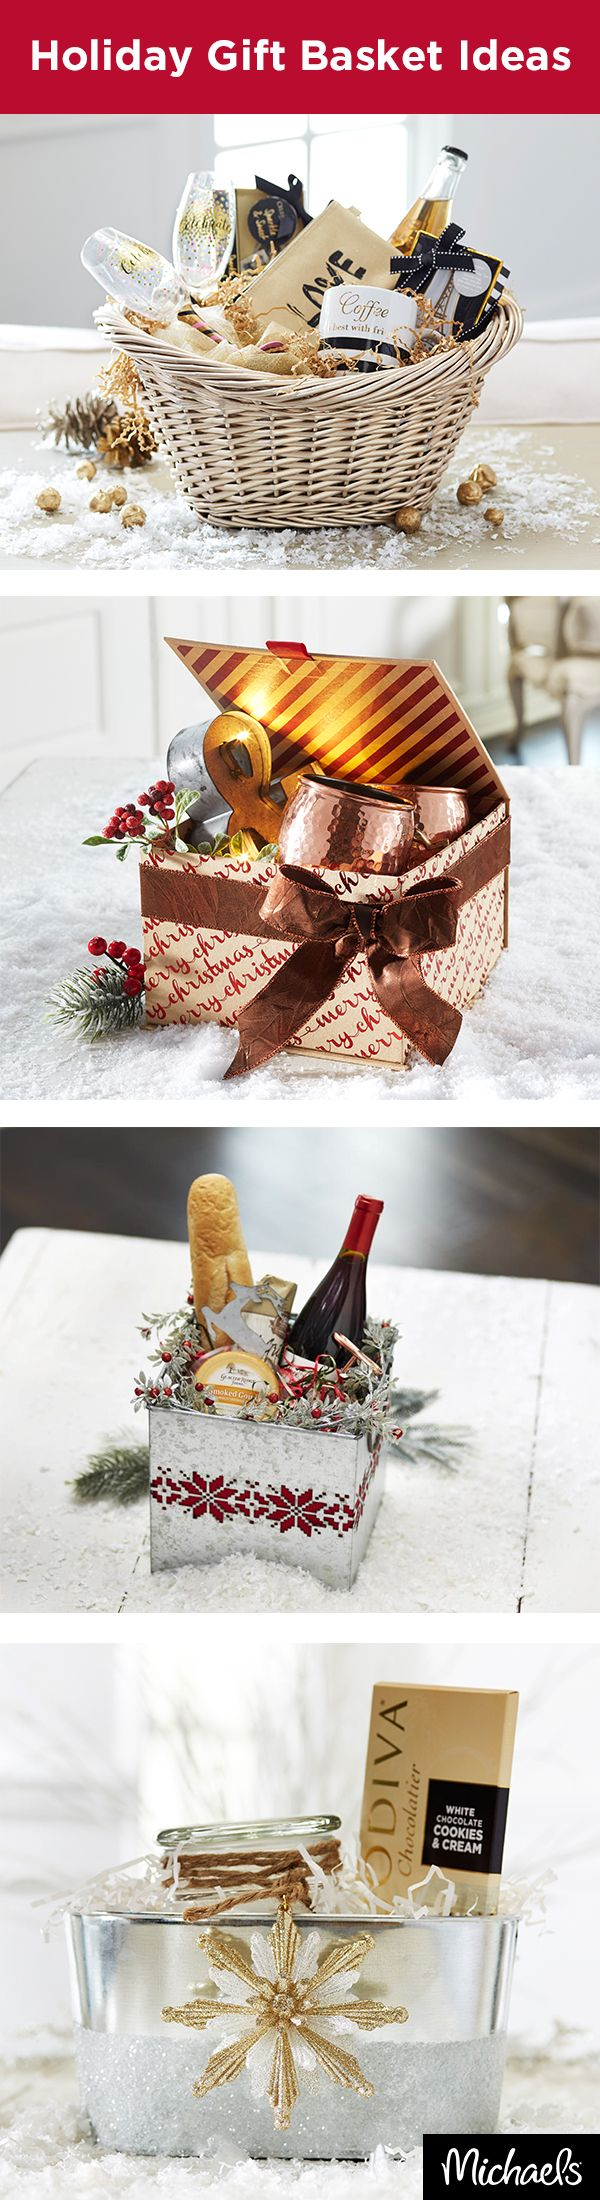 Make gift giving personal with these fun gift baskets. Fill them to the brim with the recipients favorite things or create a themed basket for them to enjoy. Don't forget to add a bow or embellishment as a final touch. Get everything you need to build the perfect gift basket at your local Michaels store.